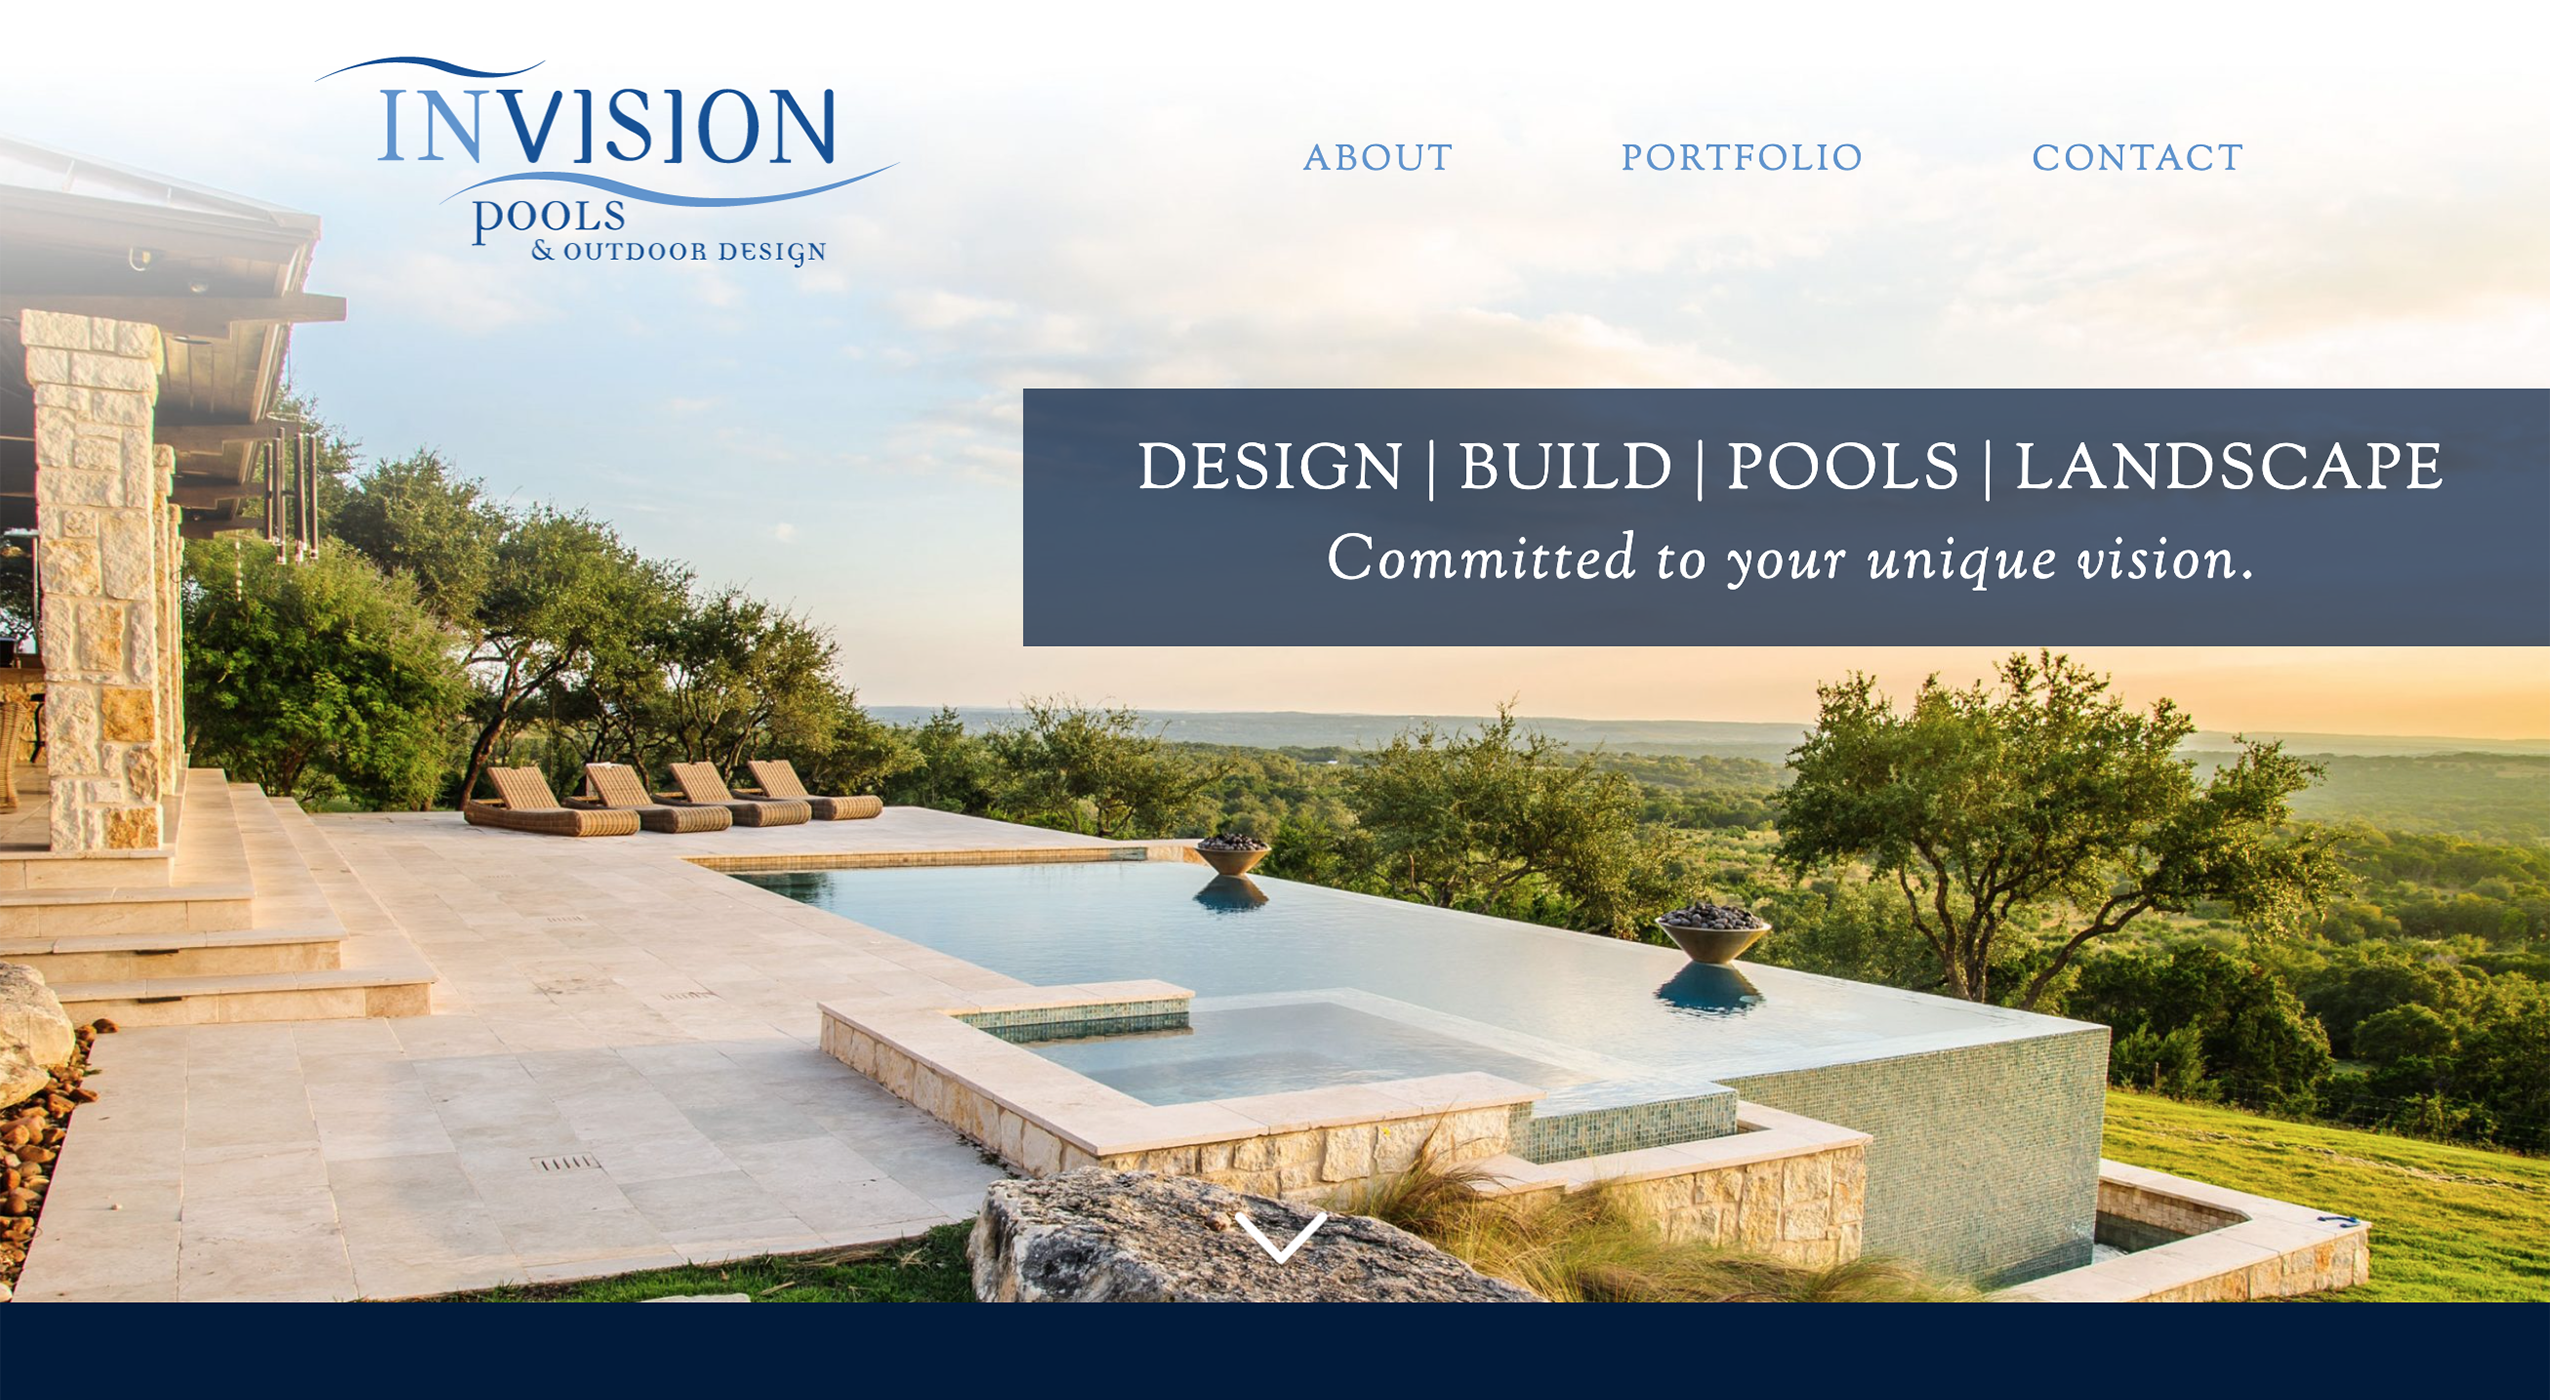 invision pools and outdoor design